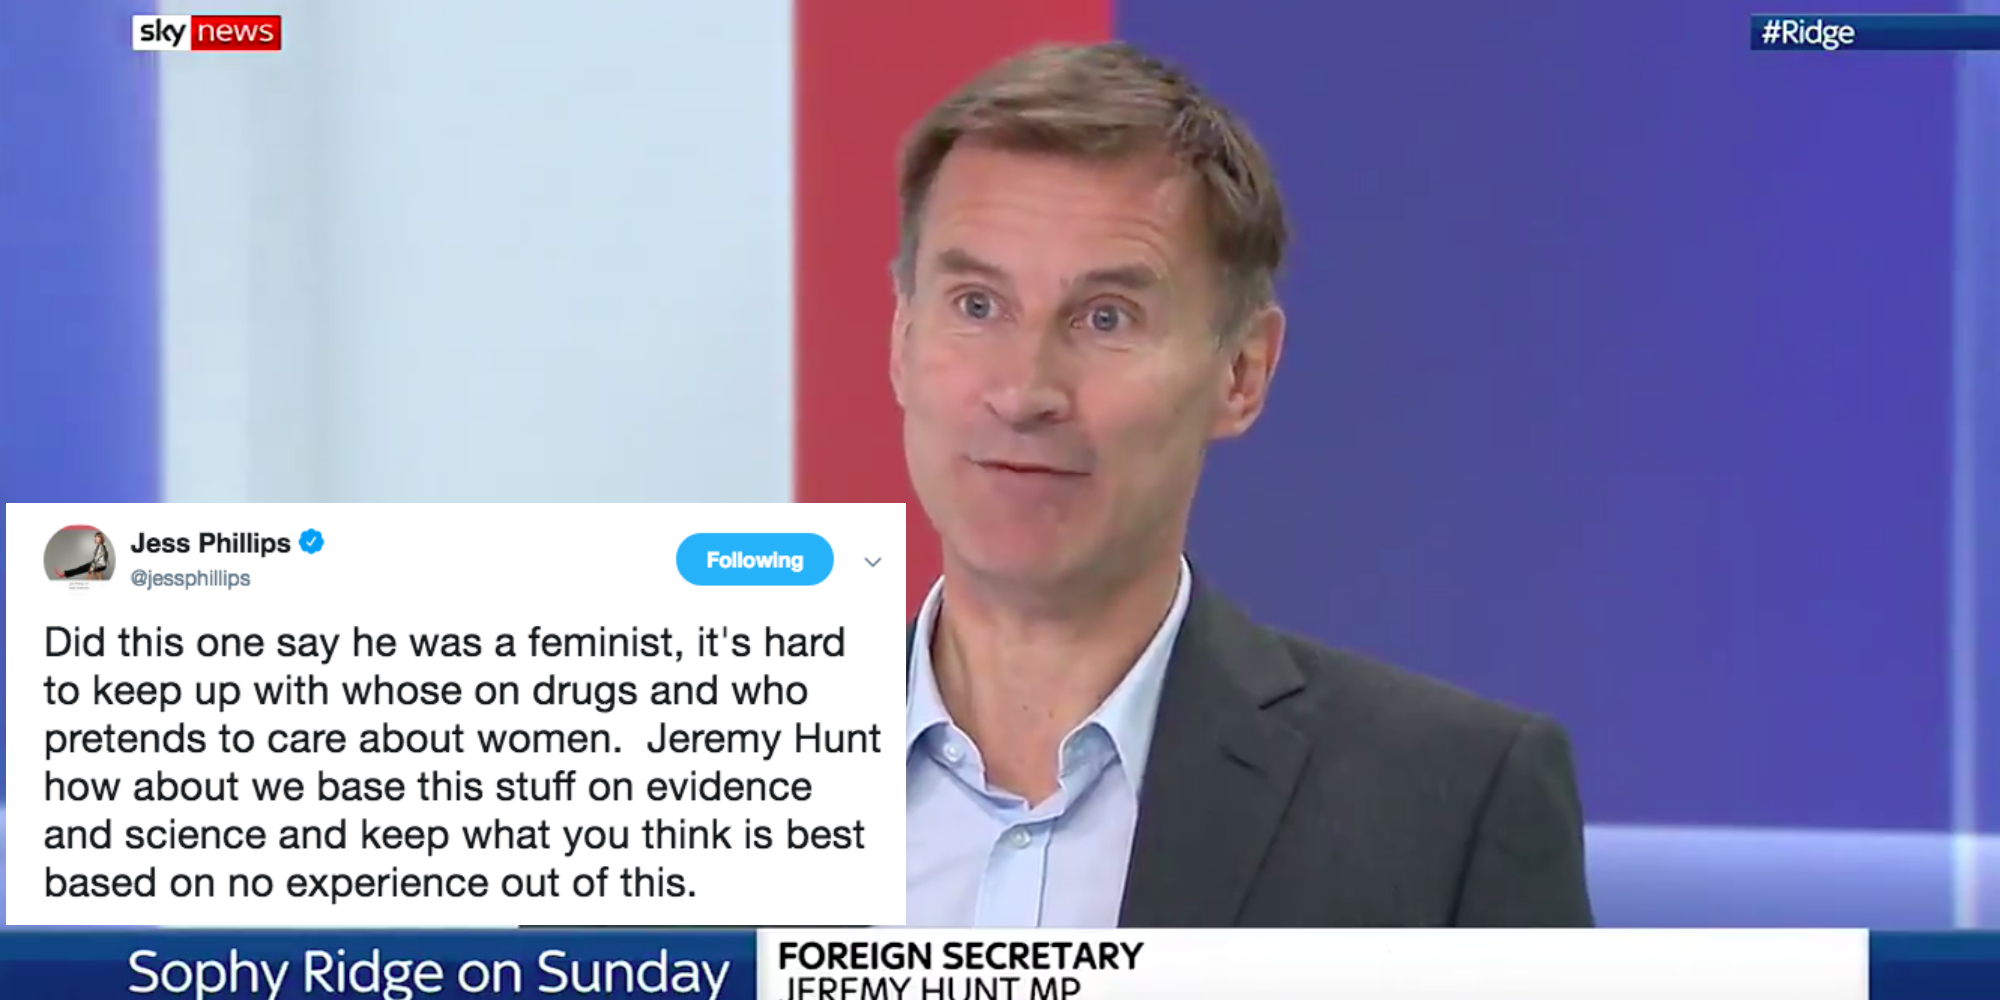 Jeremy Hunt MP on Sky News